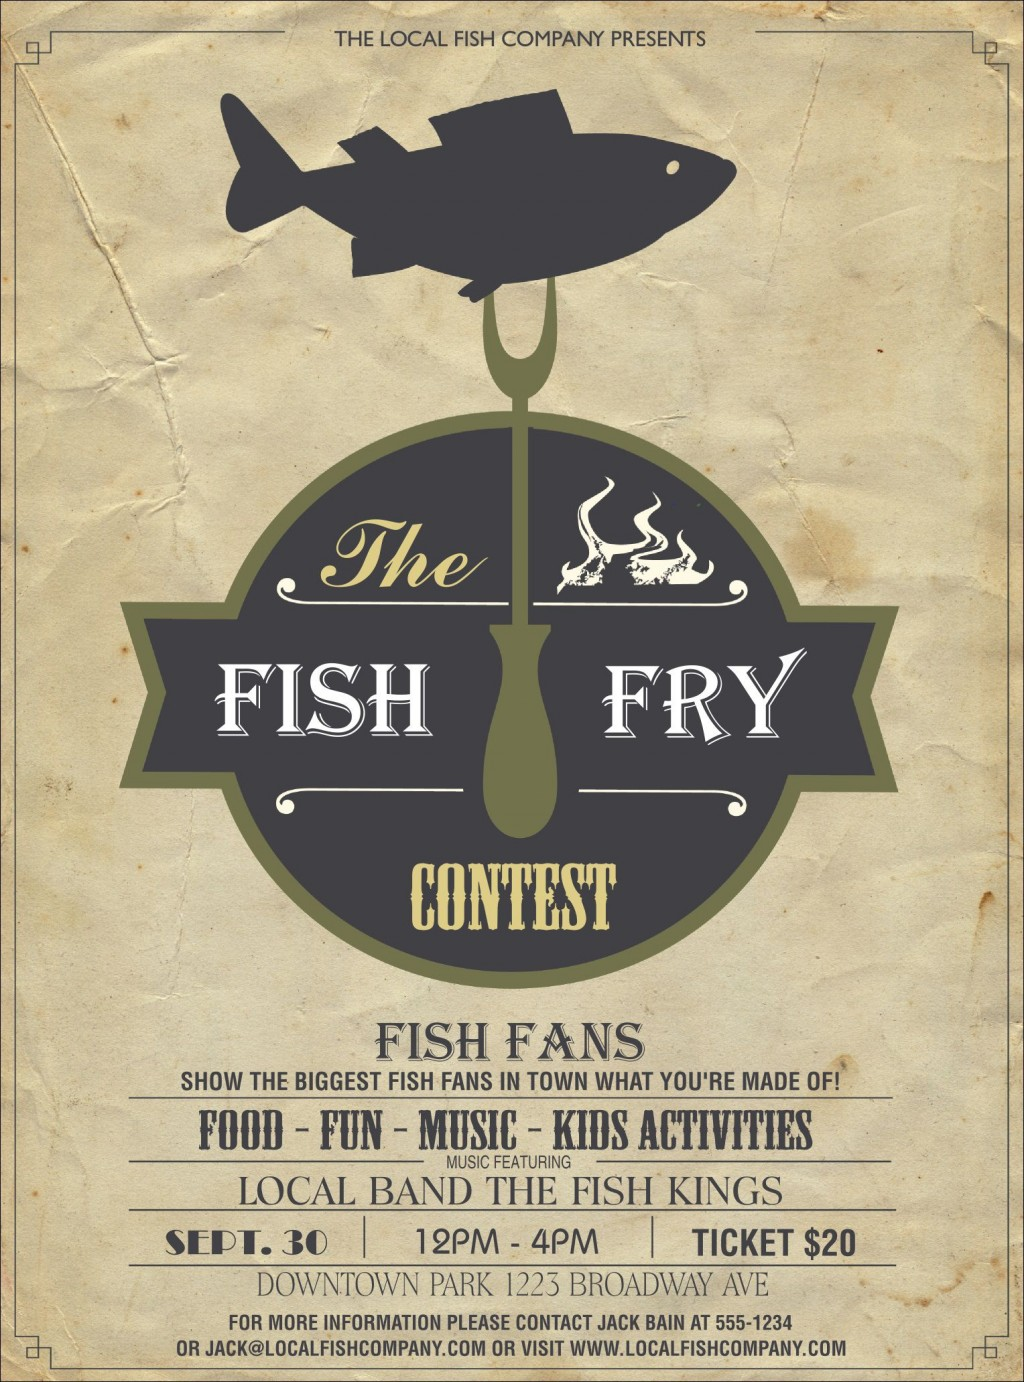 010 Excellent Fish Fry Flyer Template Picture  Printable Free Powerpoint PsdLarge